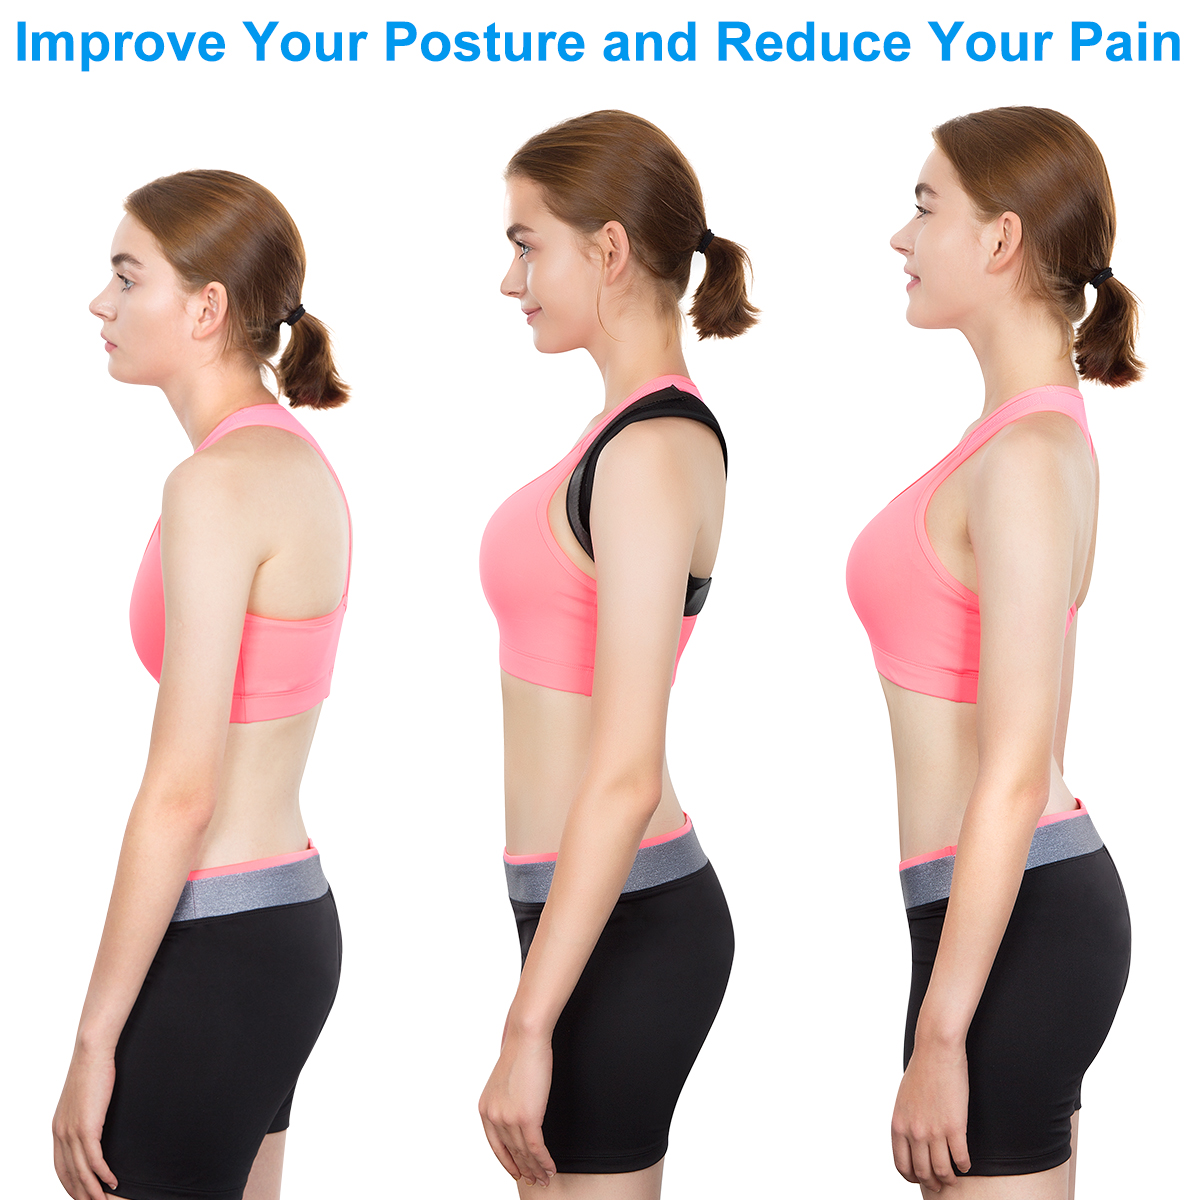 Breathable neoprene therapy shoulder body support adjustable magnetic waistcoat back brace posture corrector for men woman